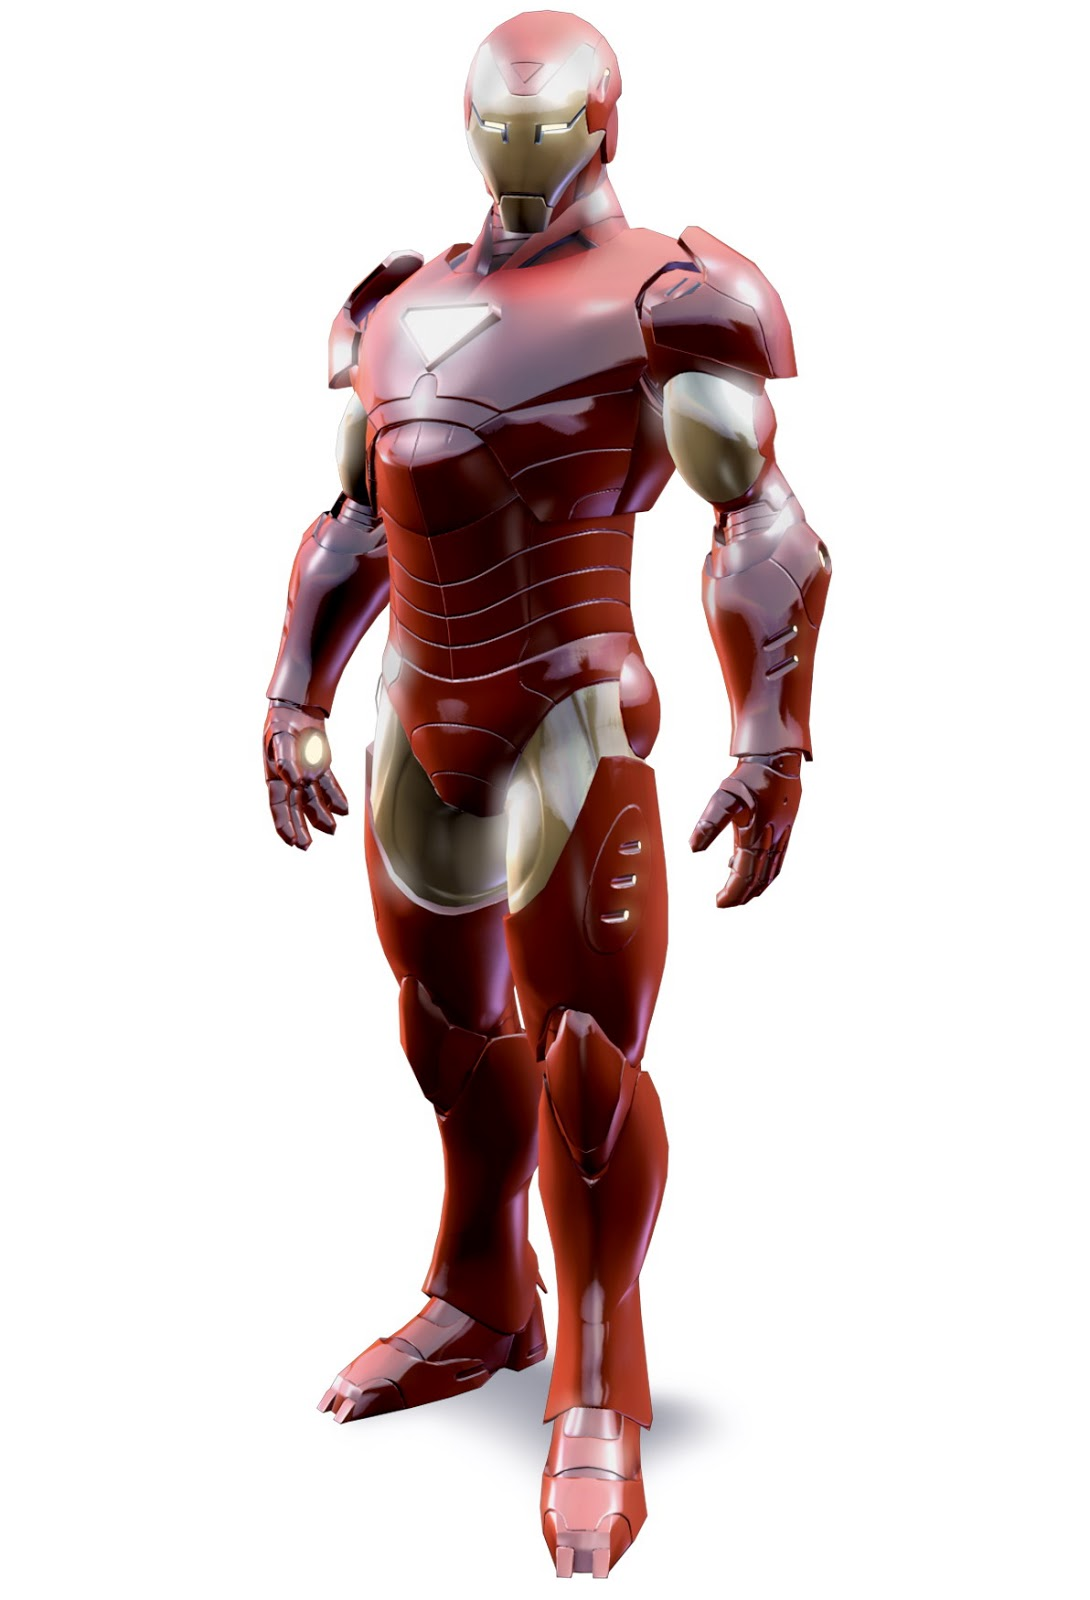 TOP FIVE: TOP FIVE BEST IRON MAN ARMORS